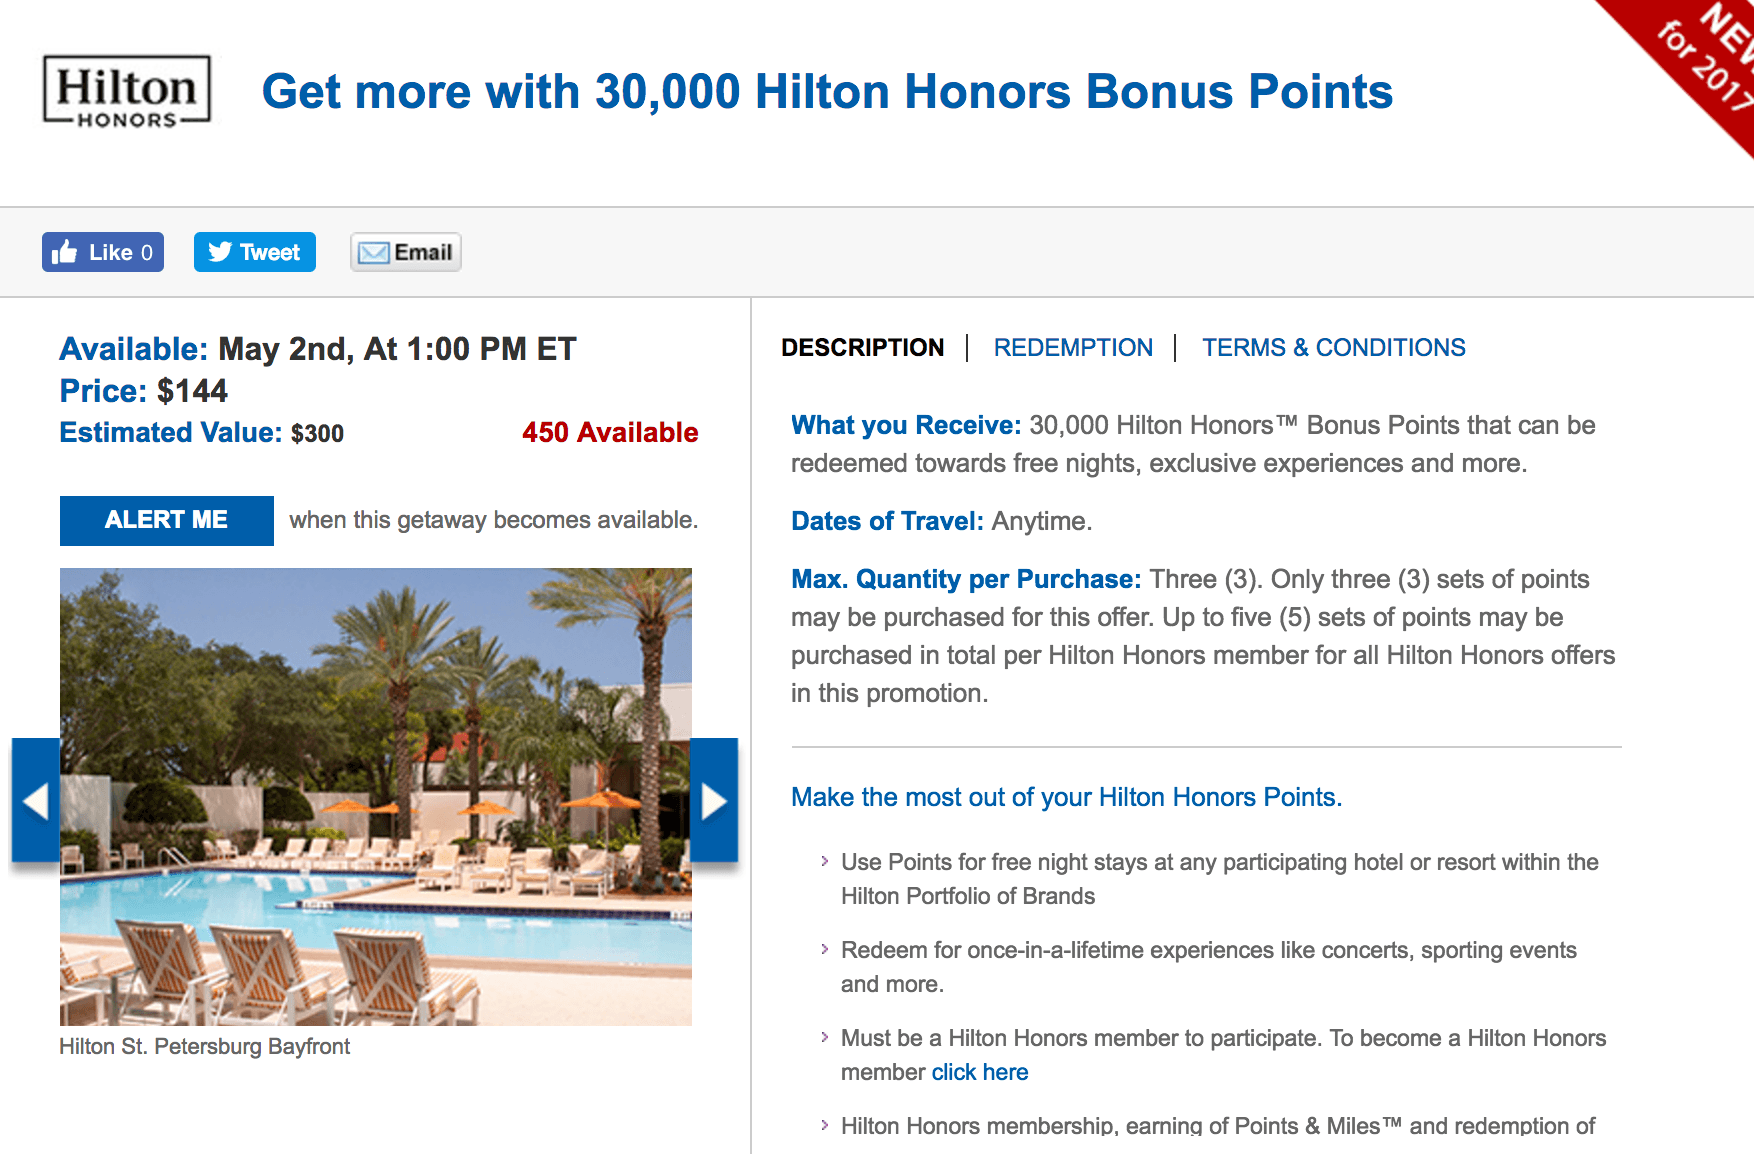 Buy Hilton HHonors points at a discount.